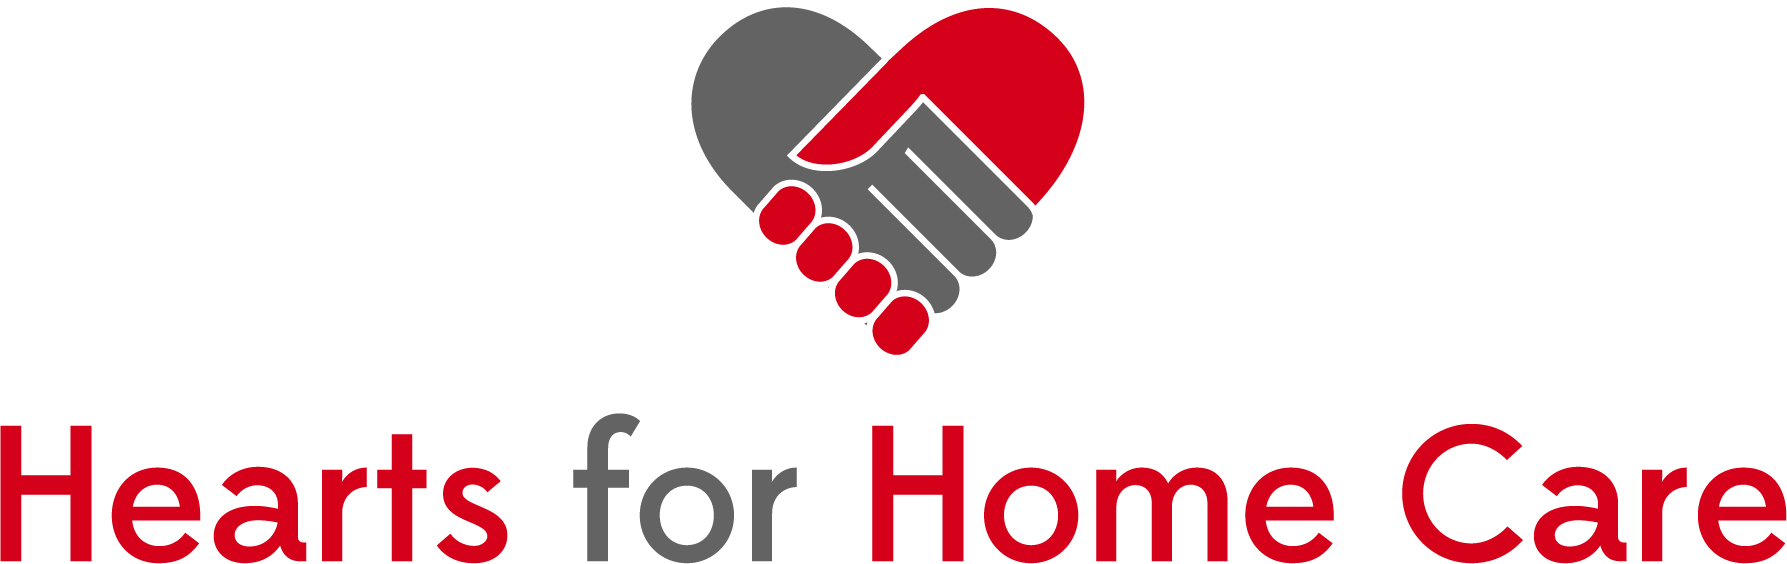 Hearts For Home Care Logo